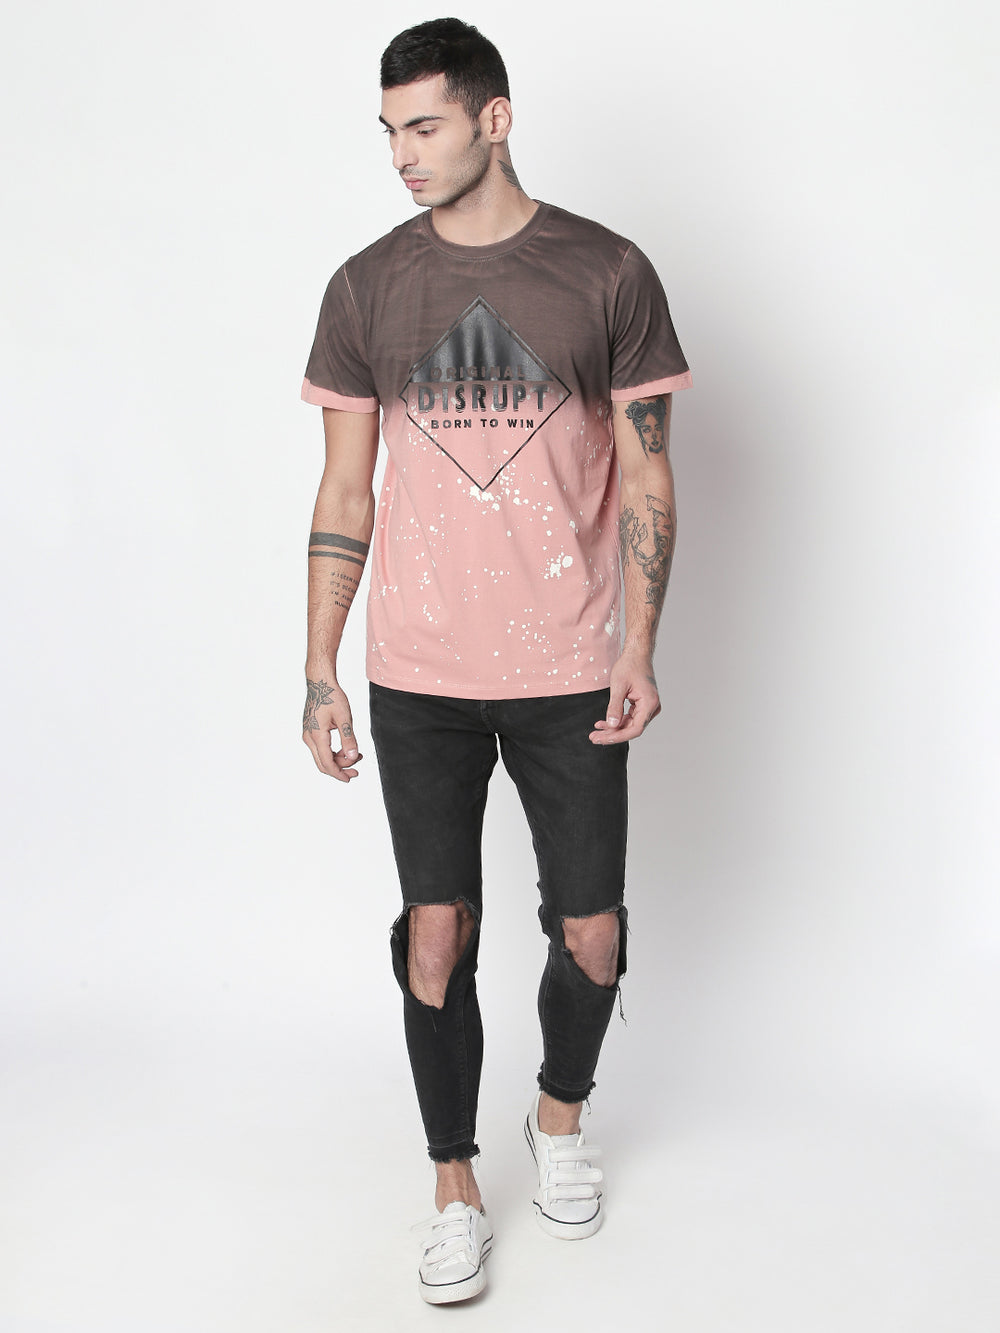 Rose Pink Disrupt Graphic Print Round Neck Half Sleeve T-shirt